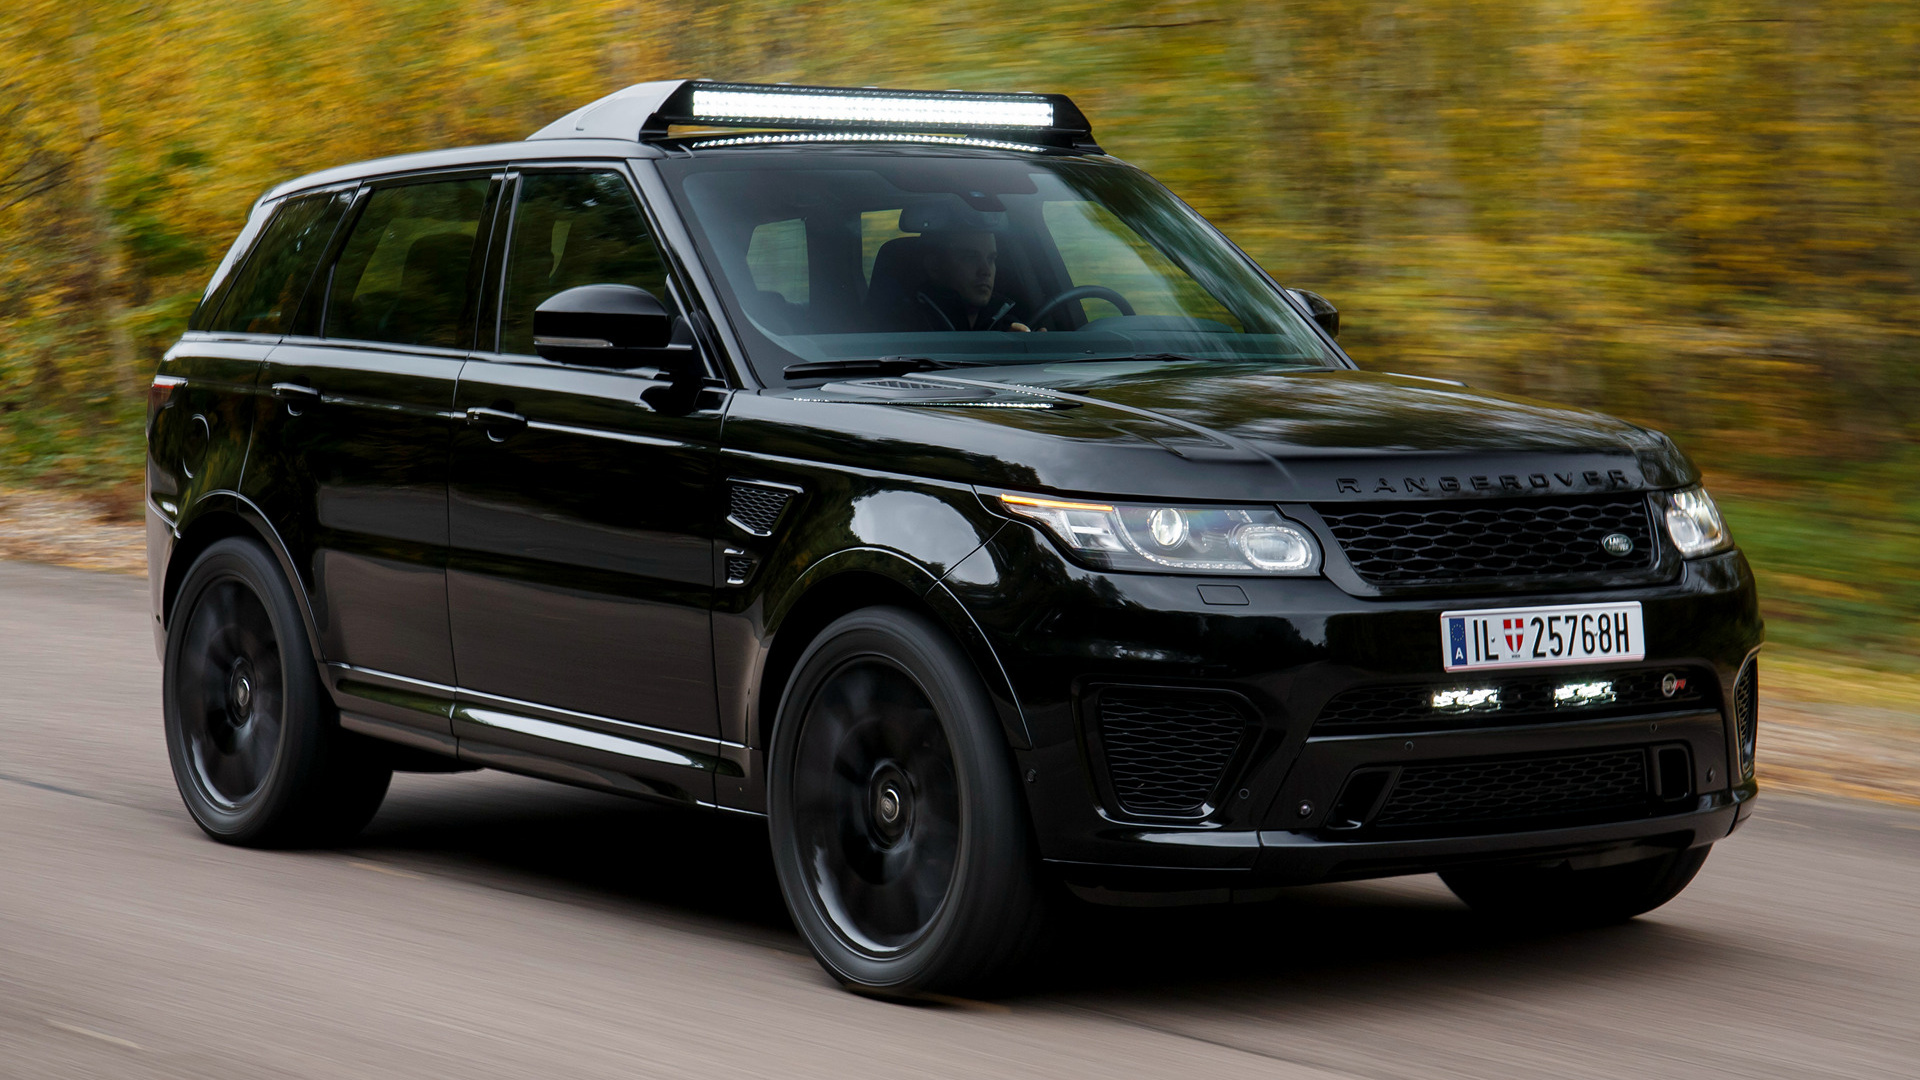 Range Rover Sport Svr 007 Spectre 2015 Wallpapers And Hd